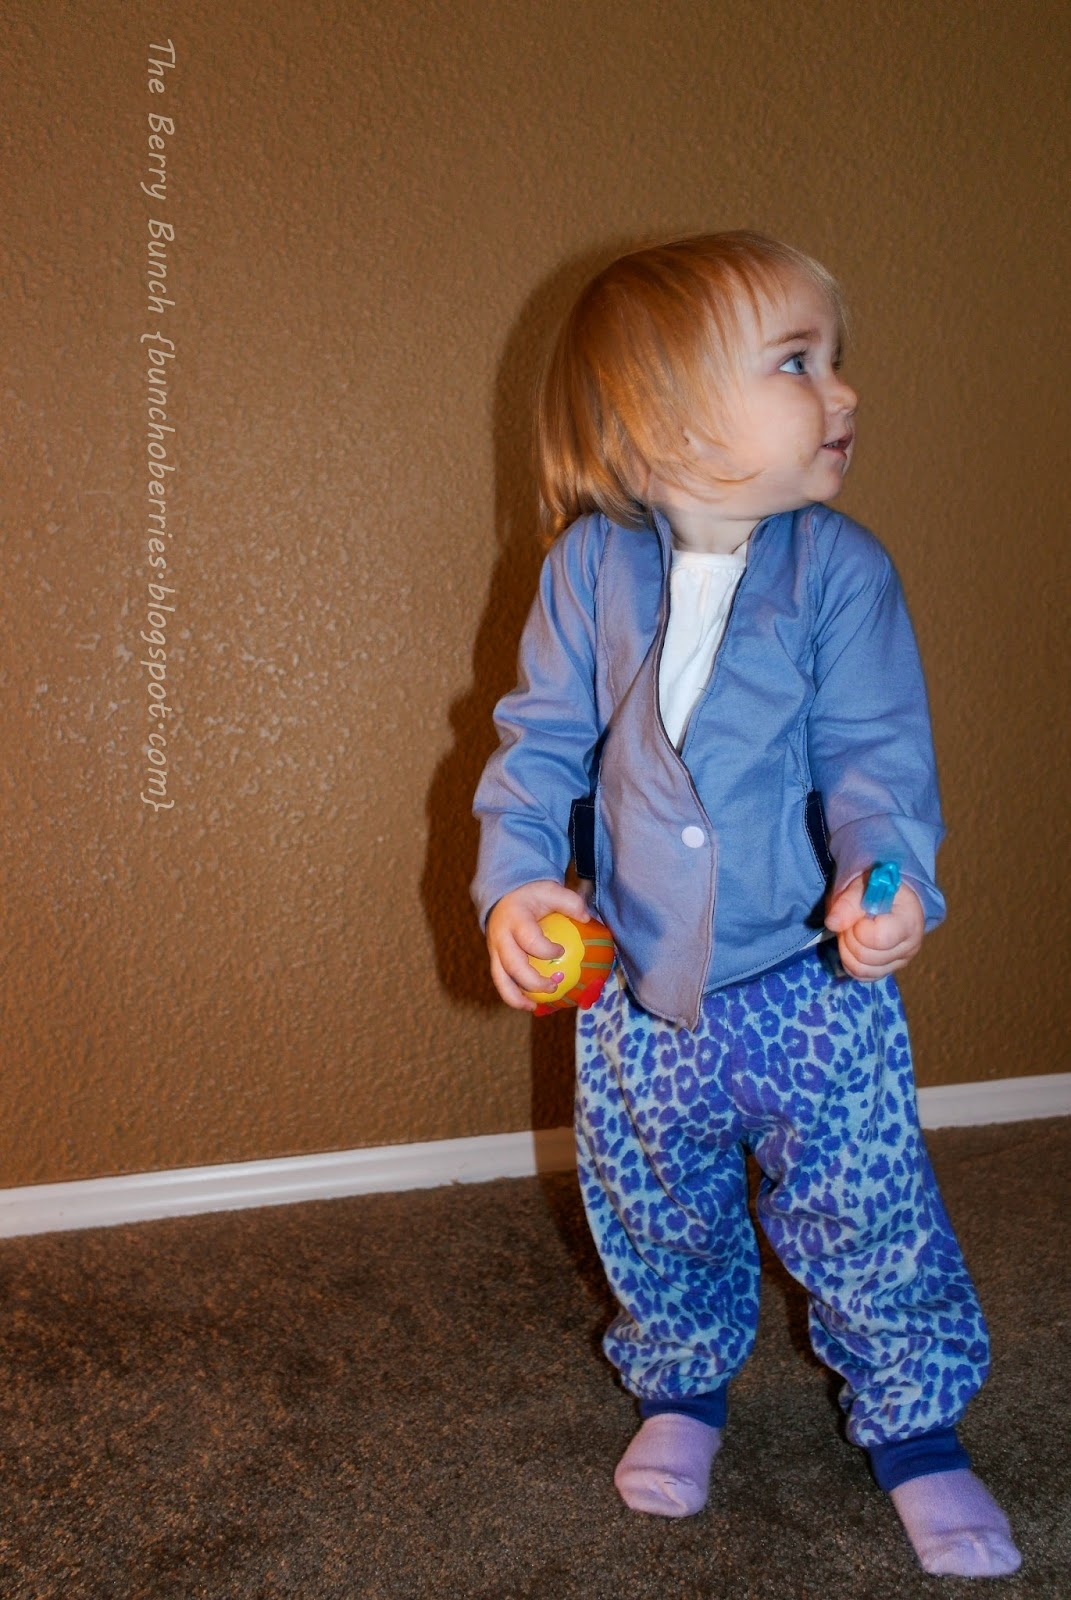 Winter Wear Designs Phresh Blazer & EYMM Free Style Pants - Girl's Bundle Up Blog Tour: The Berry Bunch